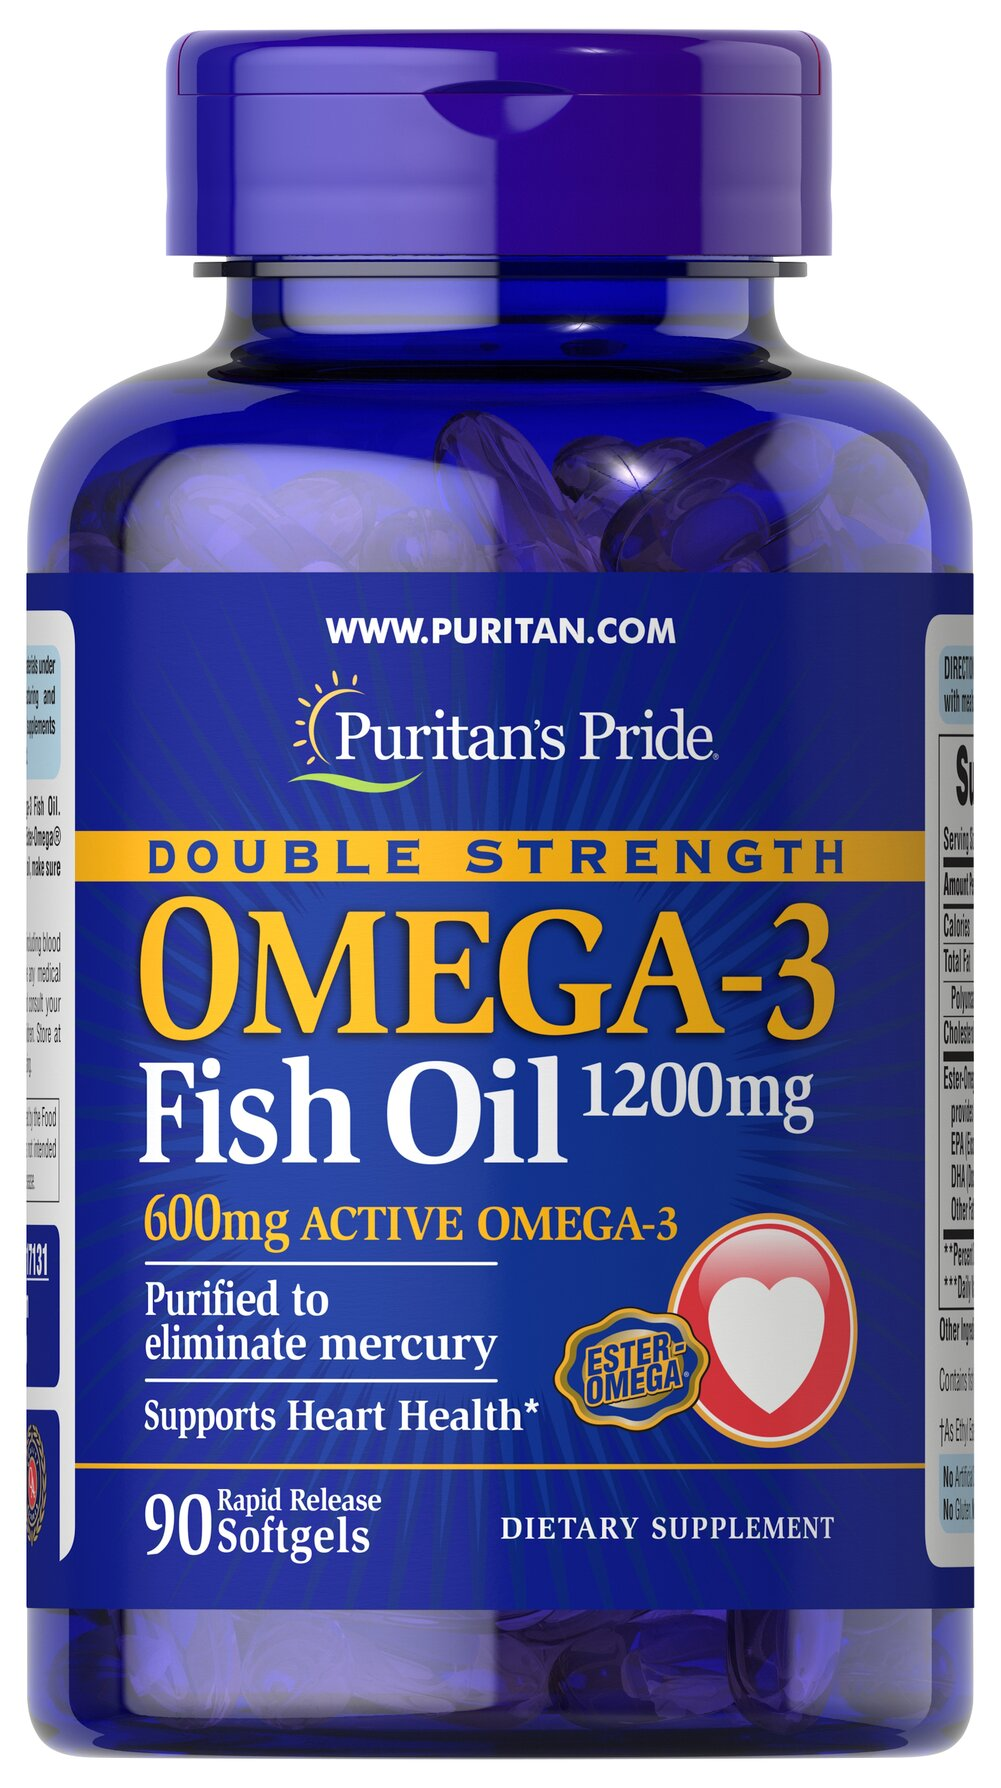 Double Strength Omega-3 Fish Oil 1200 mg/600 mg Omega-3  90 Softgels 1200 mg $19.99